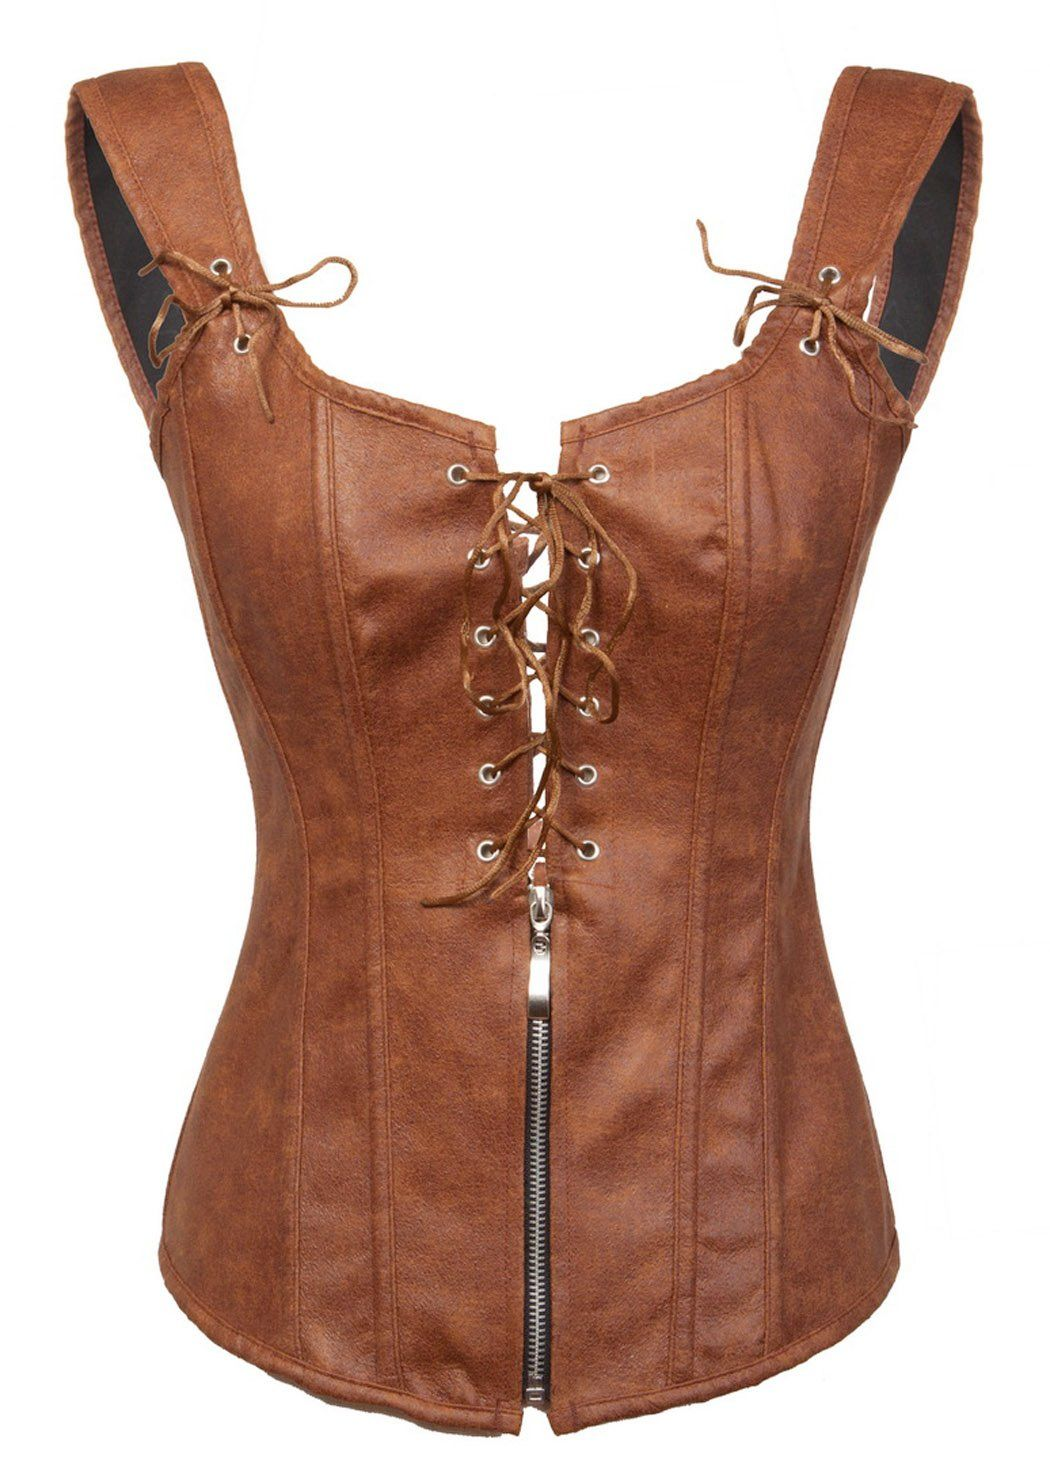 eb0f7baea0 Amazon.com  BSLINGERIE® Womens Black Faux Leather Wetlook Bustier Corset   Clothing